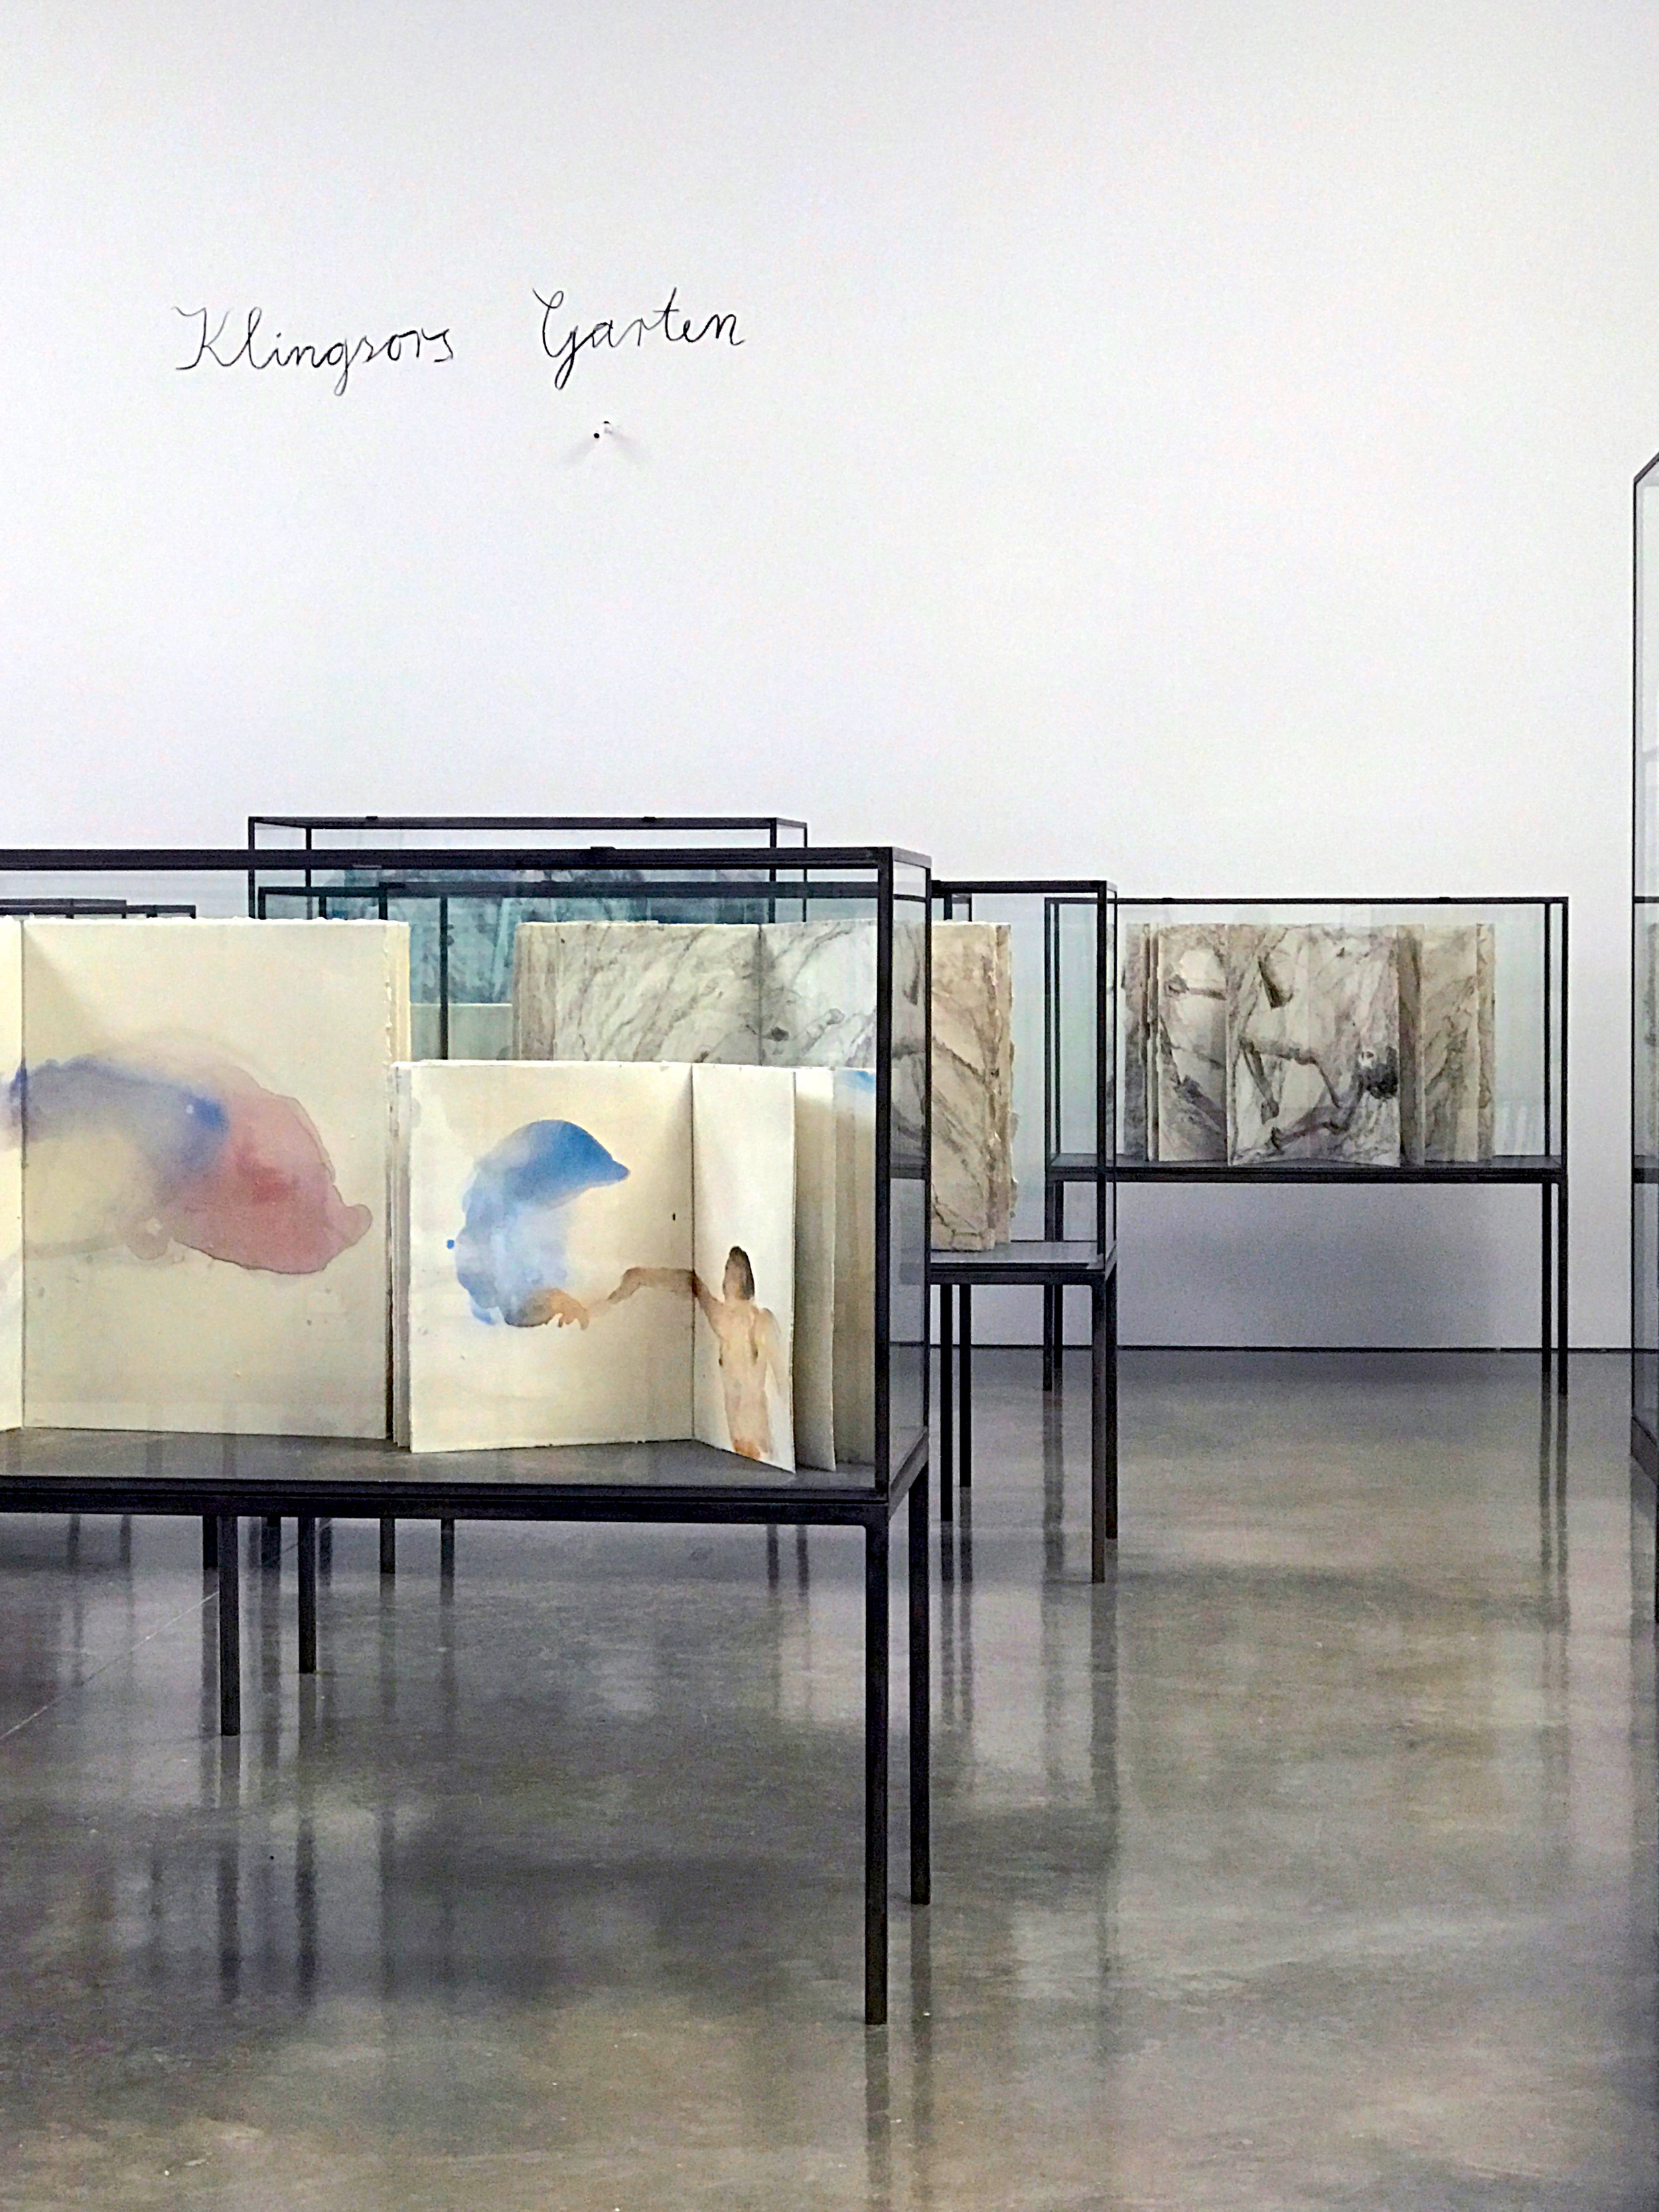 Anselm Kiefer: Transition from Cool to Warm, Installation View, Gagosian Gallery